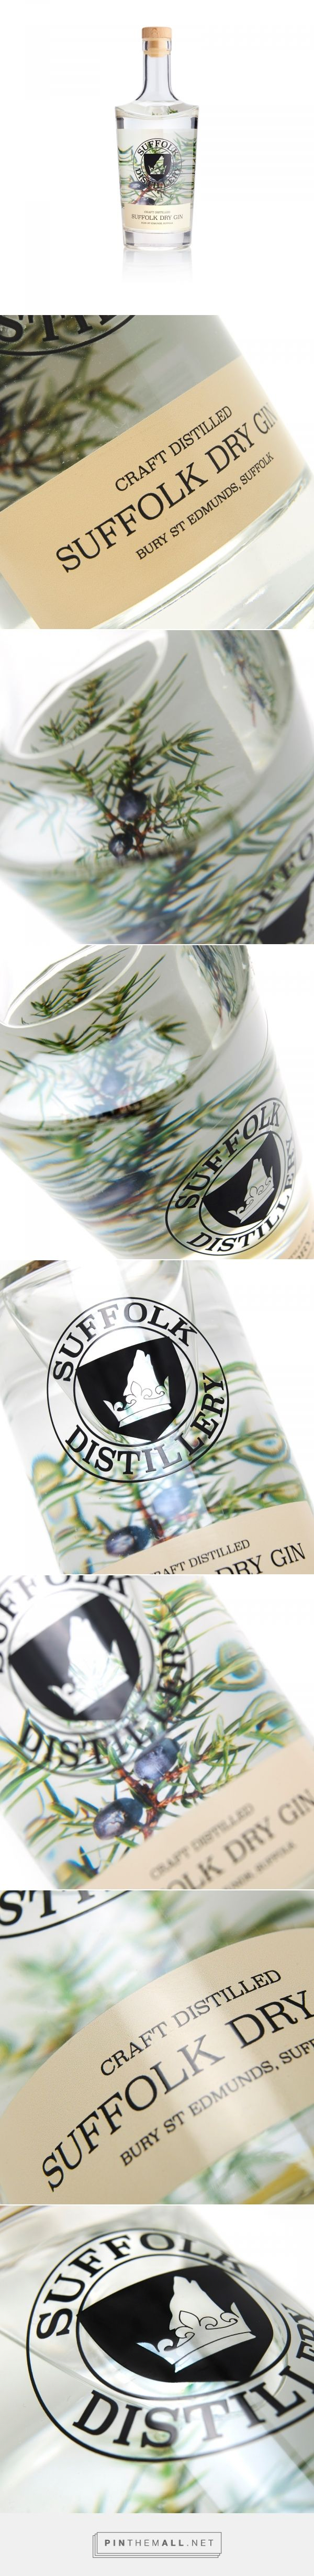 Suffolk Dry Gin - Packaging of the World - Creative Package Design Gallery - http://www.packagingoftheworld.com/2017/11/suffolk-dry-gin.html